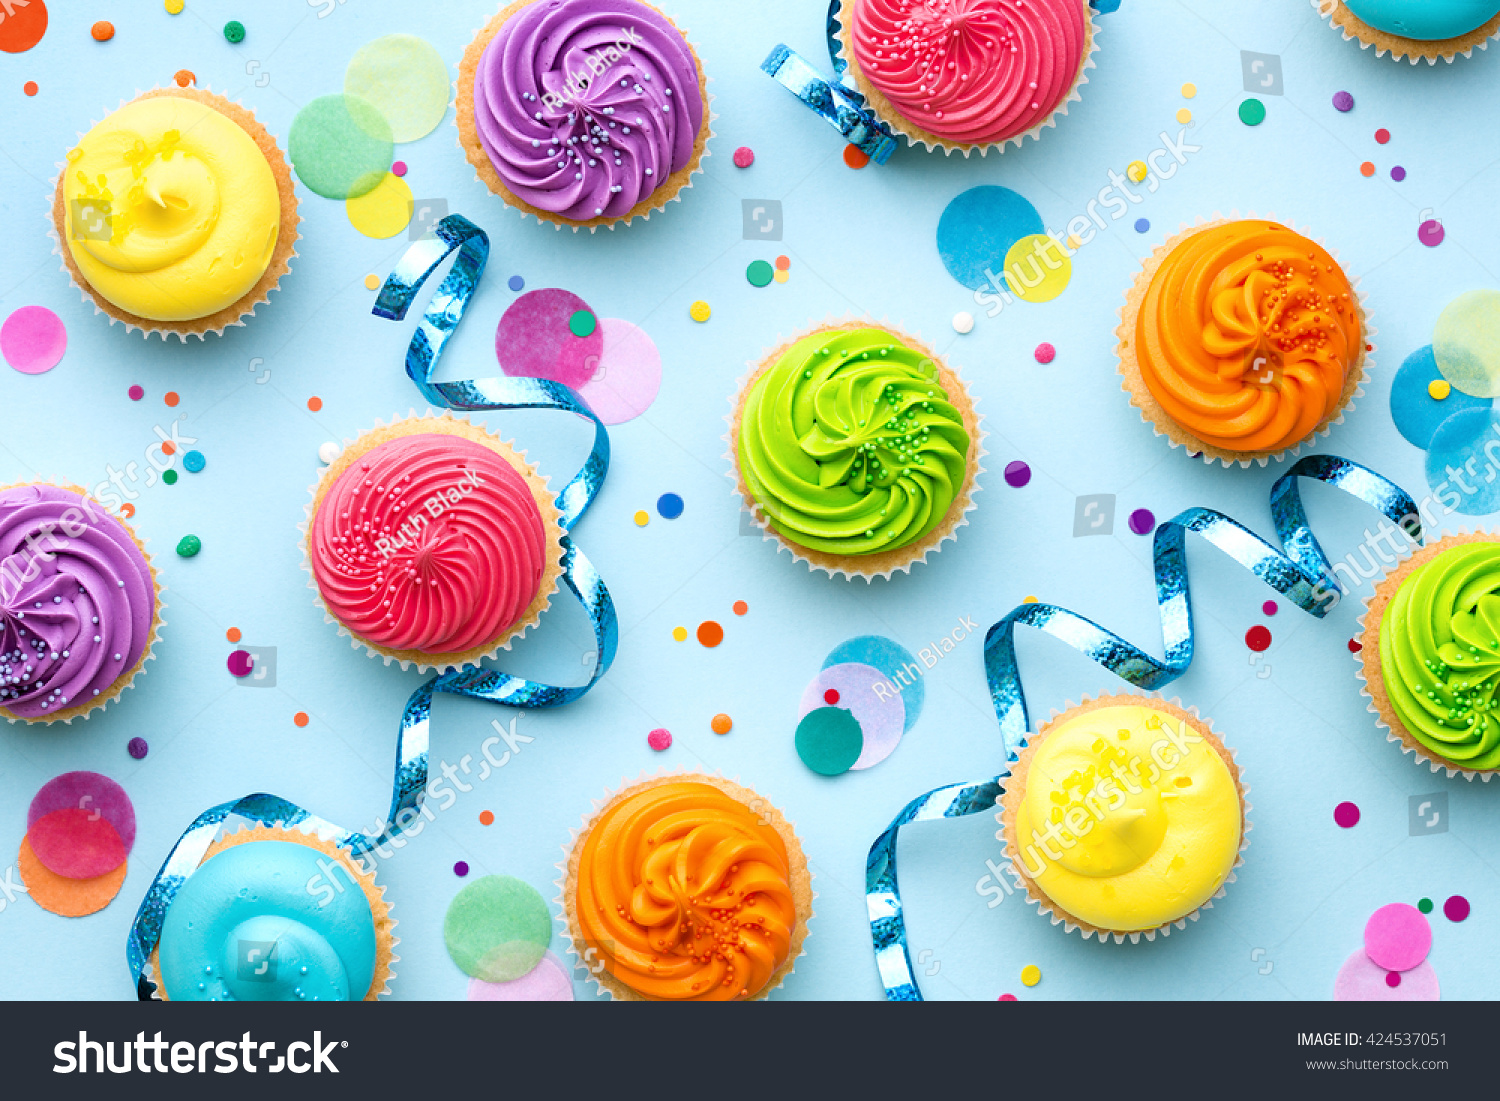 Colorful Cupcake Party Background On Blue Stock Photo